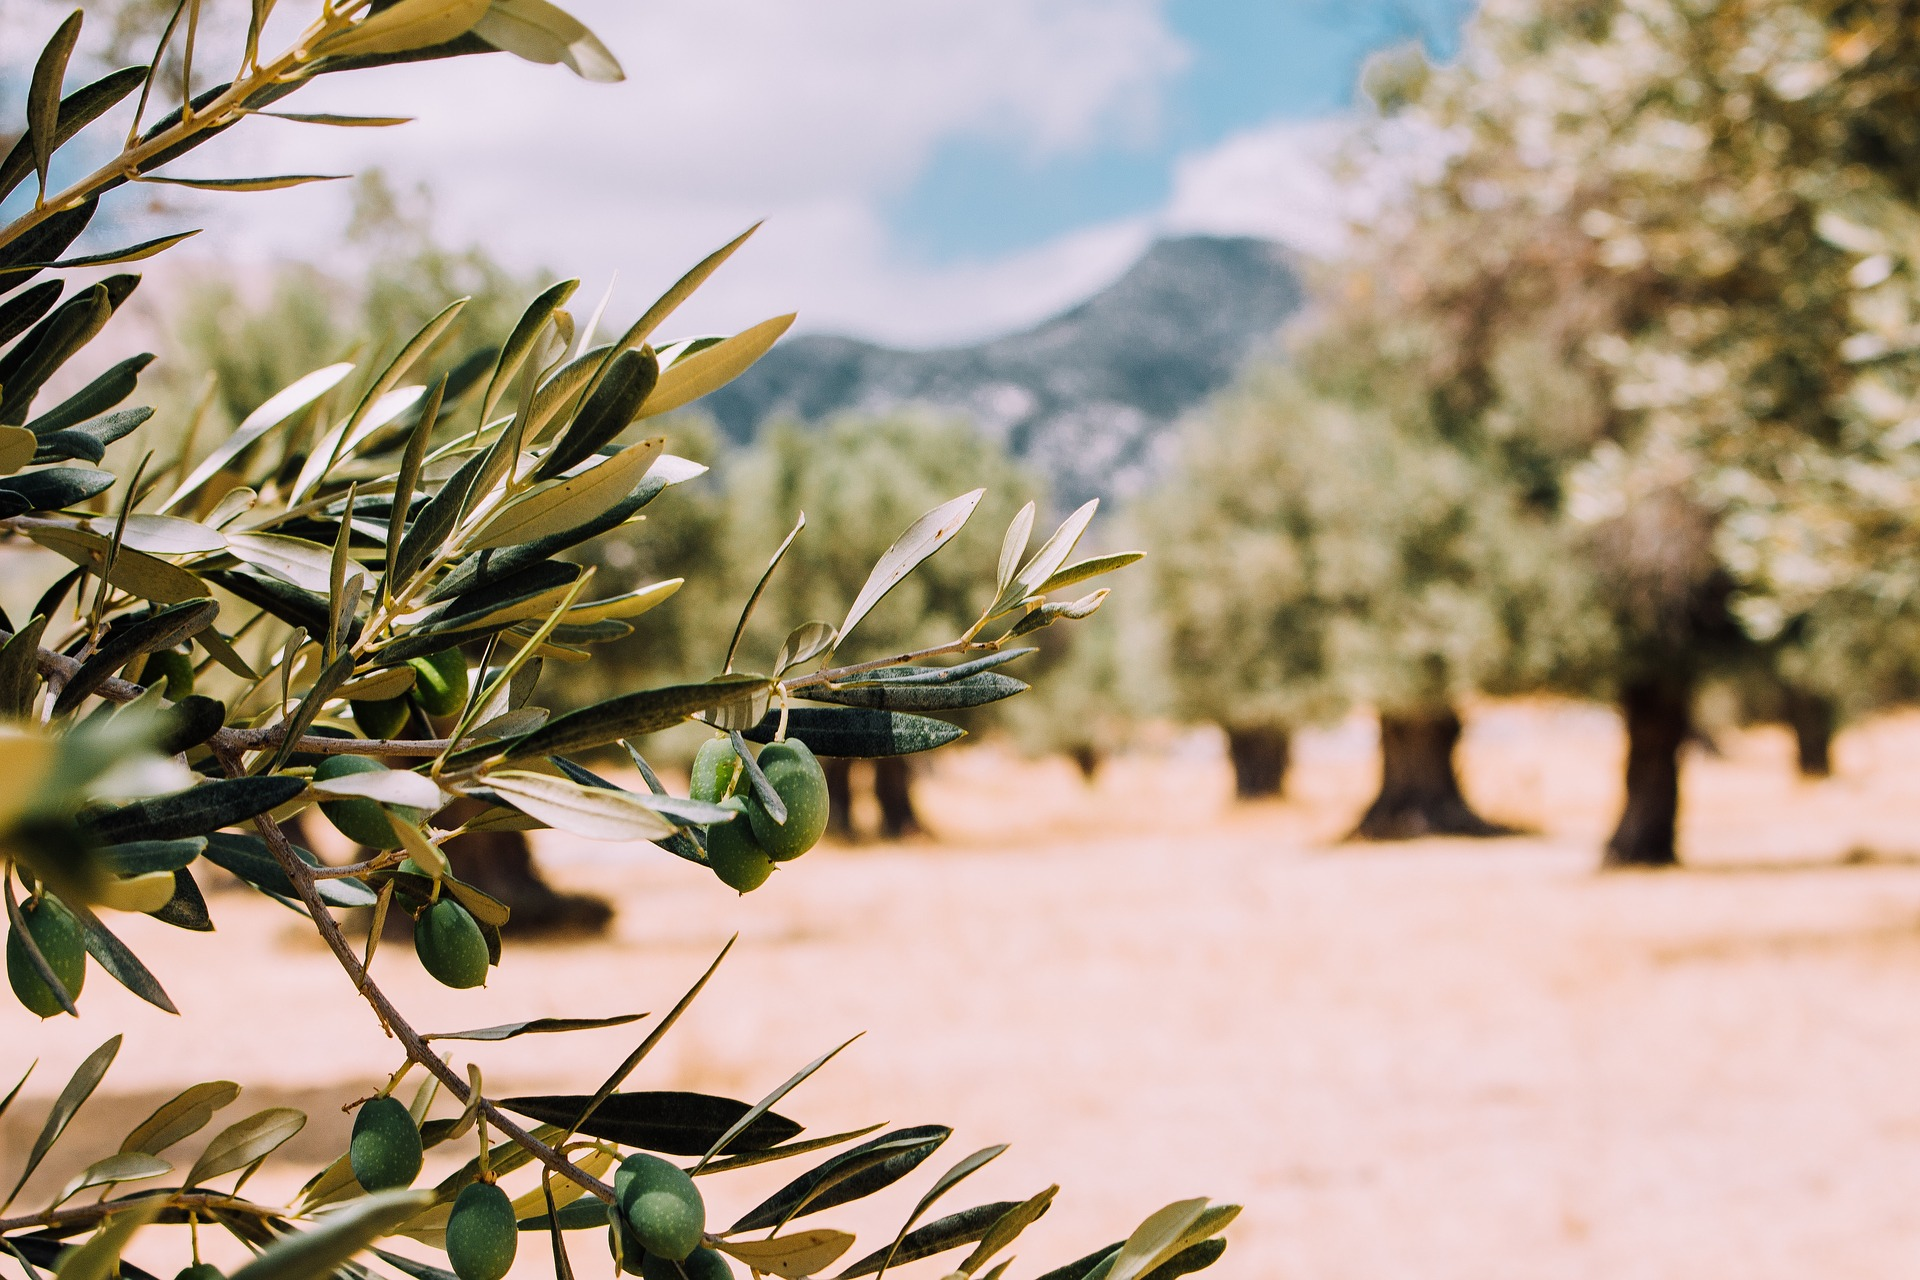 Olive trees lovedry heat,sunshine anddry soil -